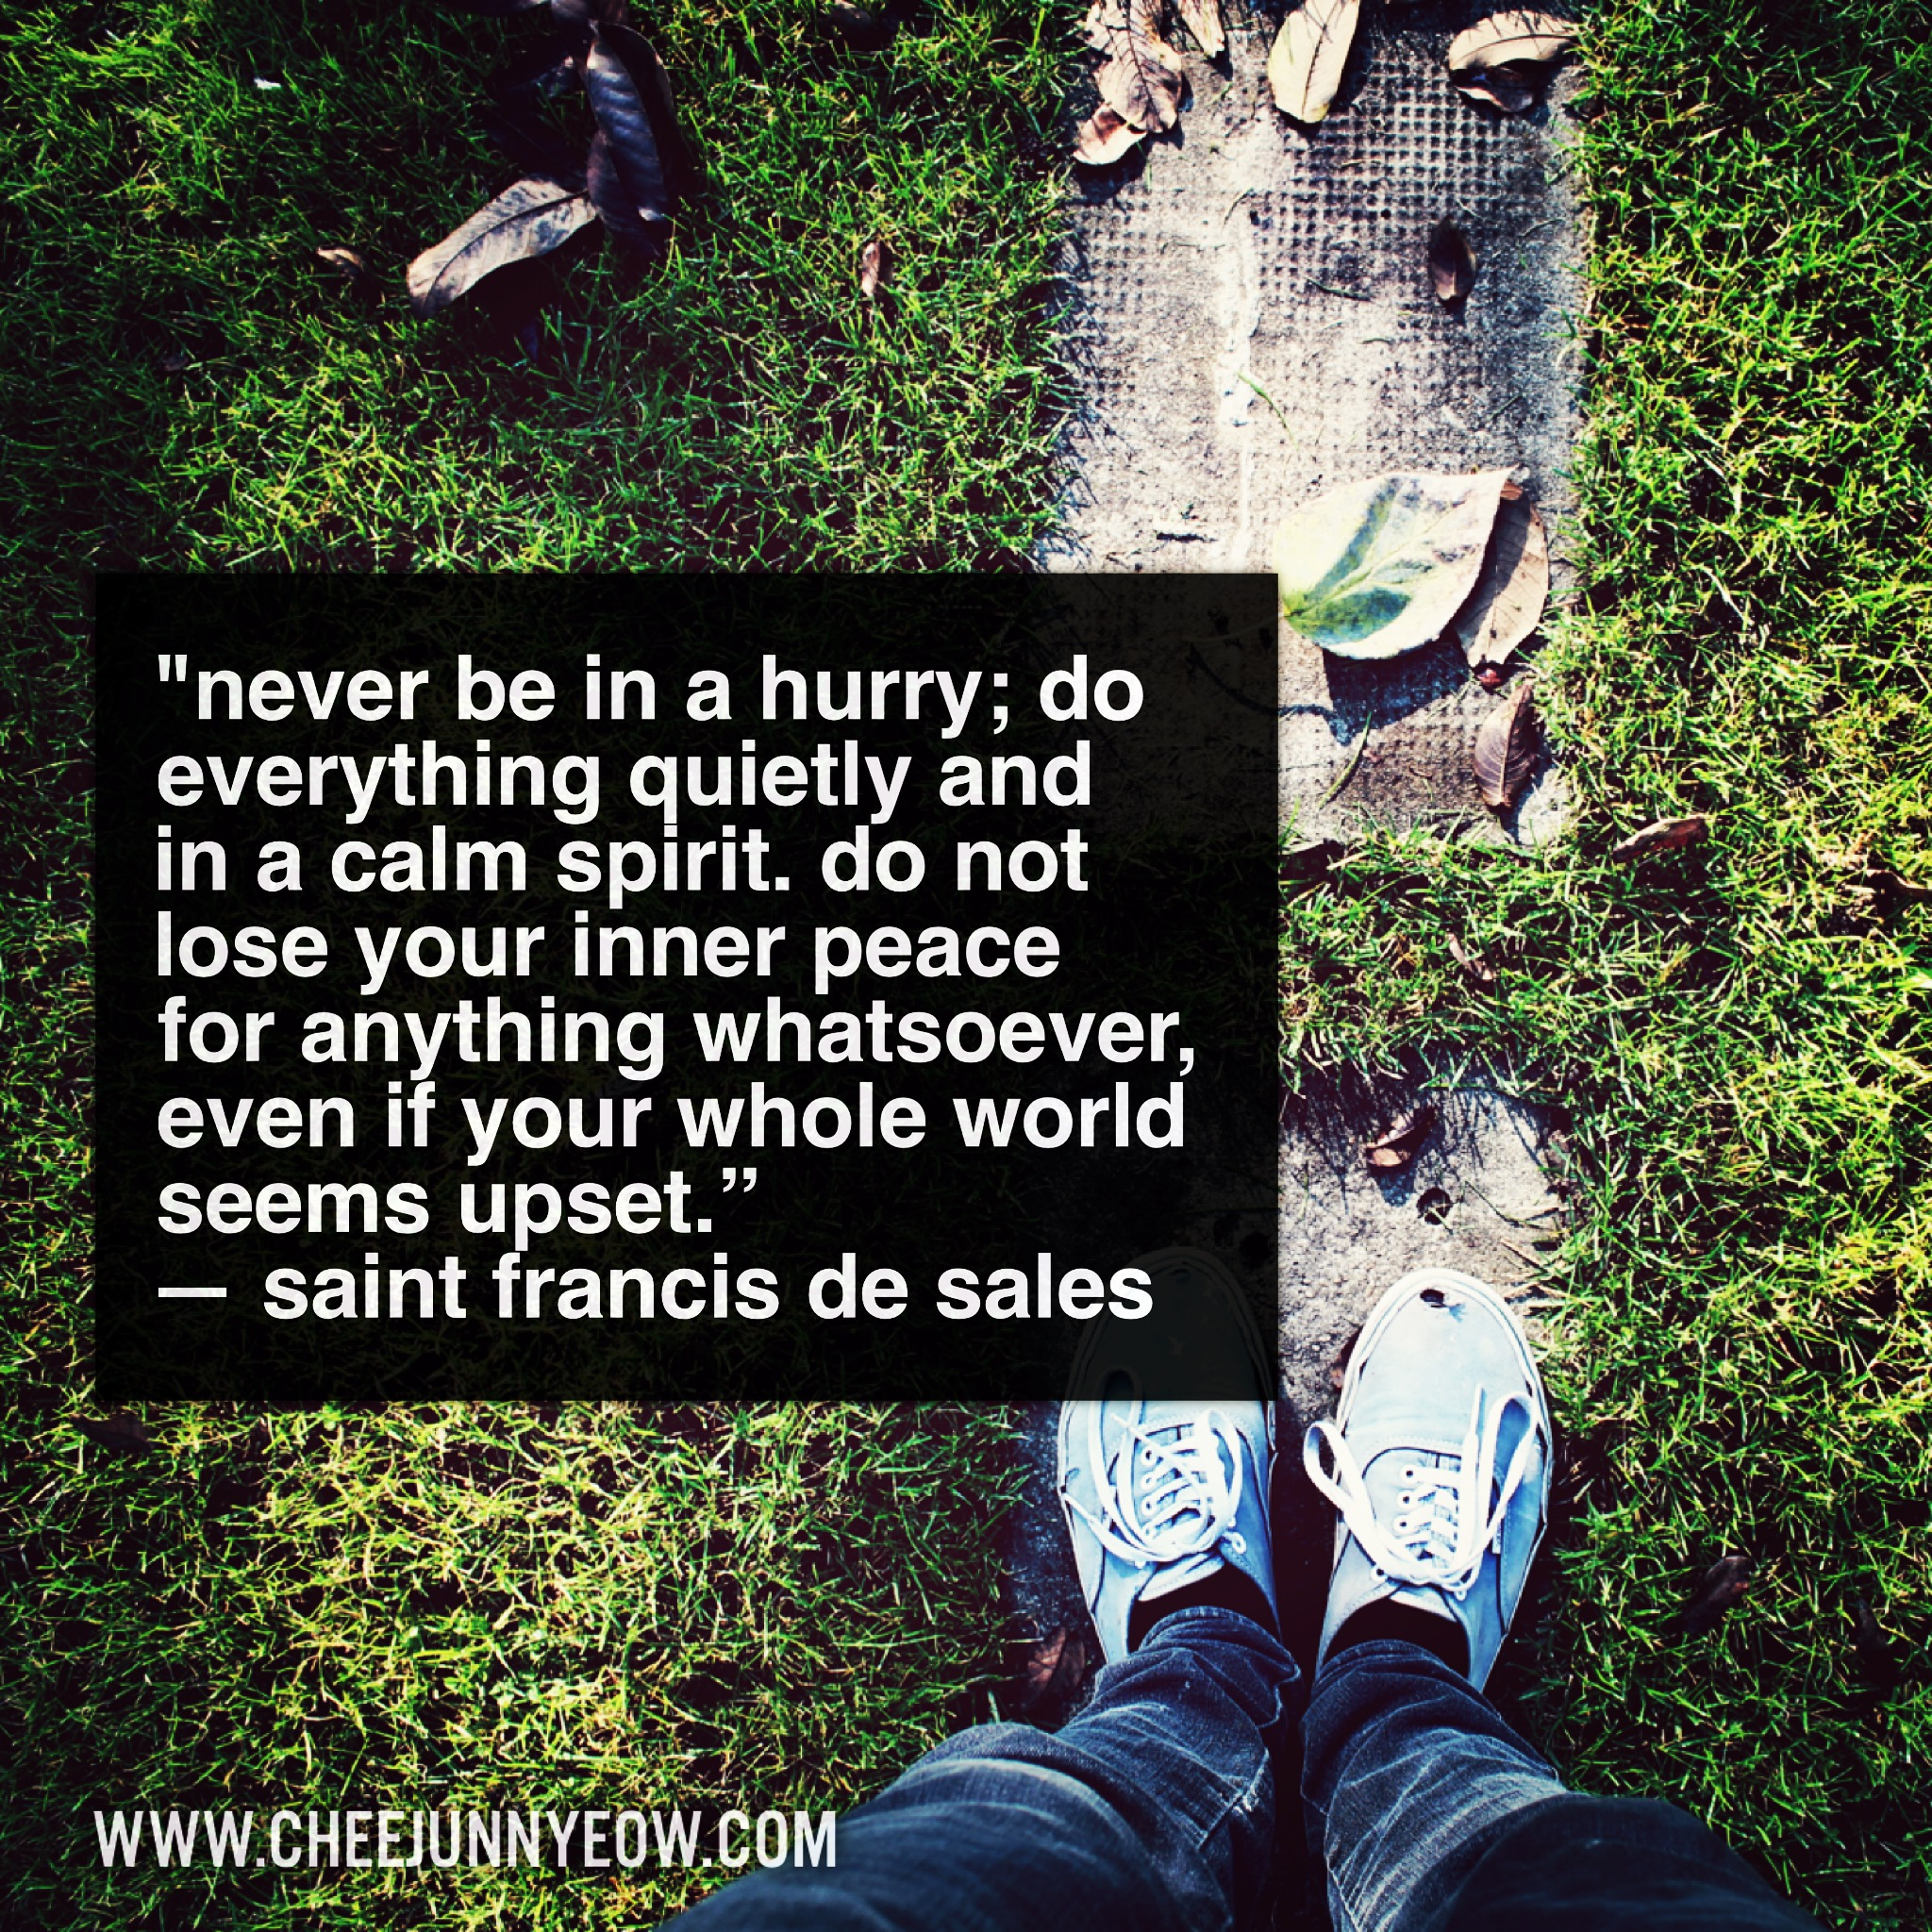 never be in a hurry, do everything quietly and in calm spirit. so not lose your inner peace for anything whatsoever